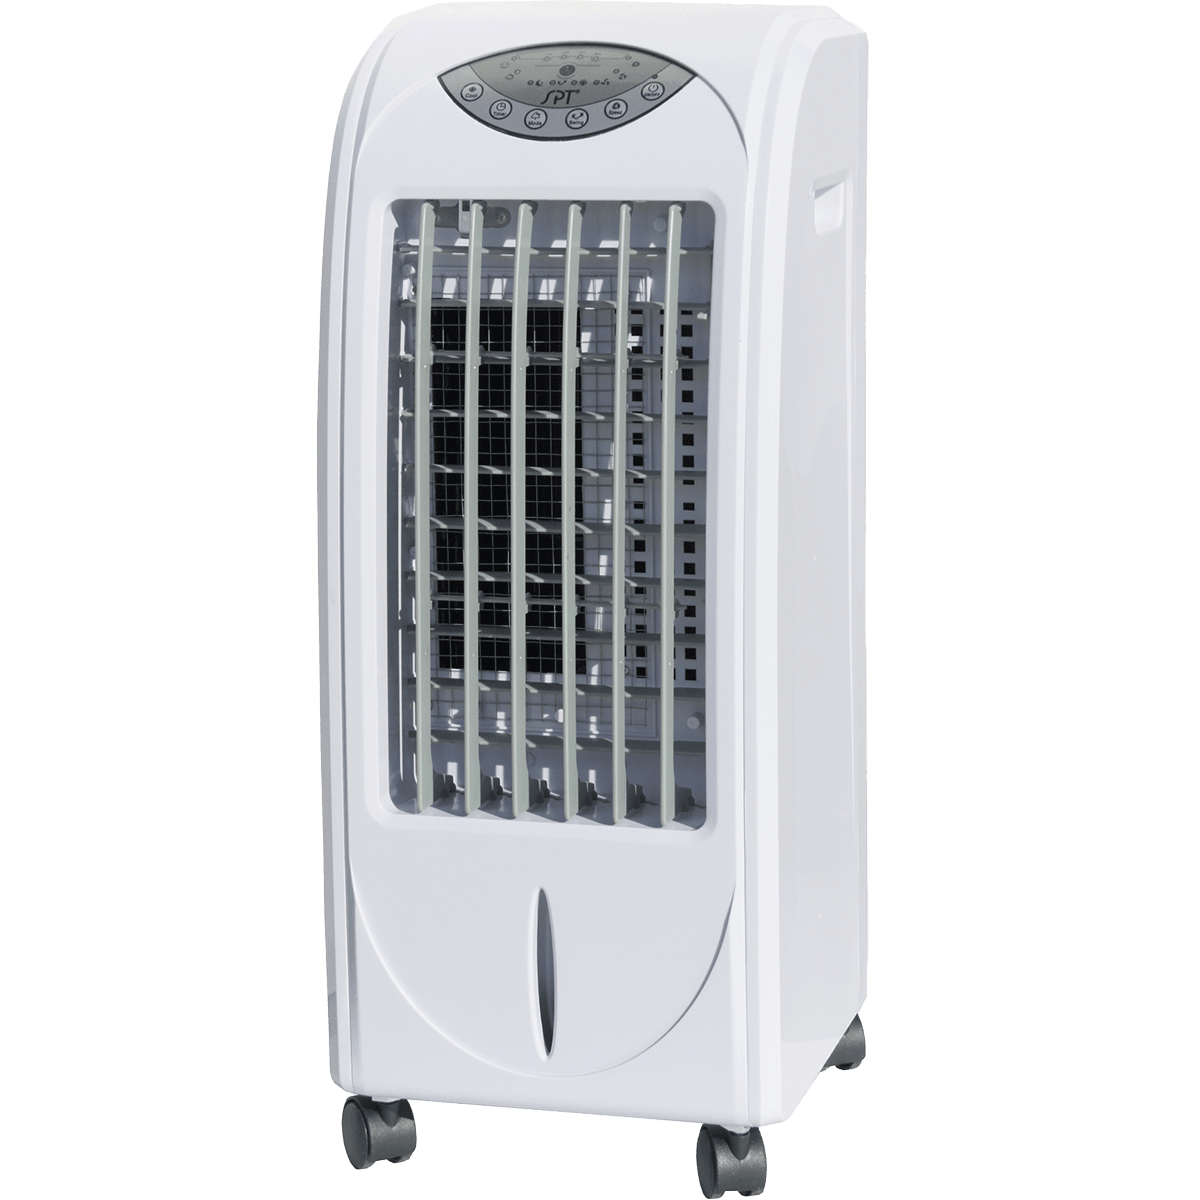 Sunpentown SF-615H Portable Evaporative Air Cooler, Ultrasonic Humidifier, & Fan su5491